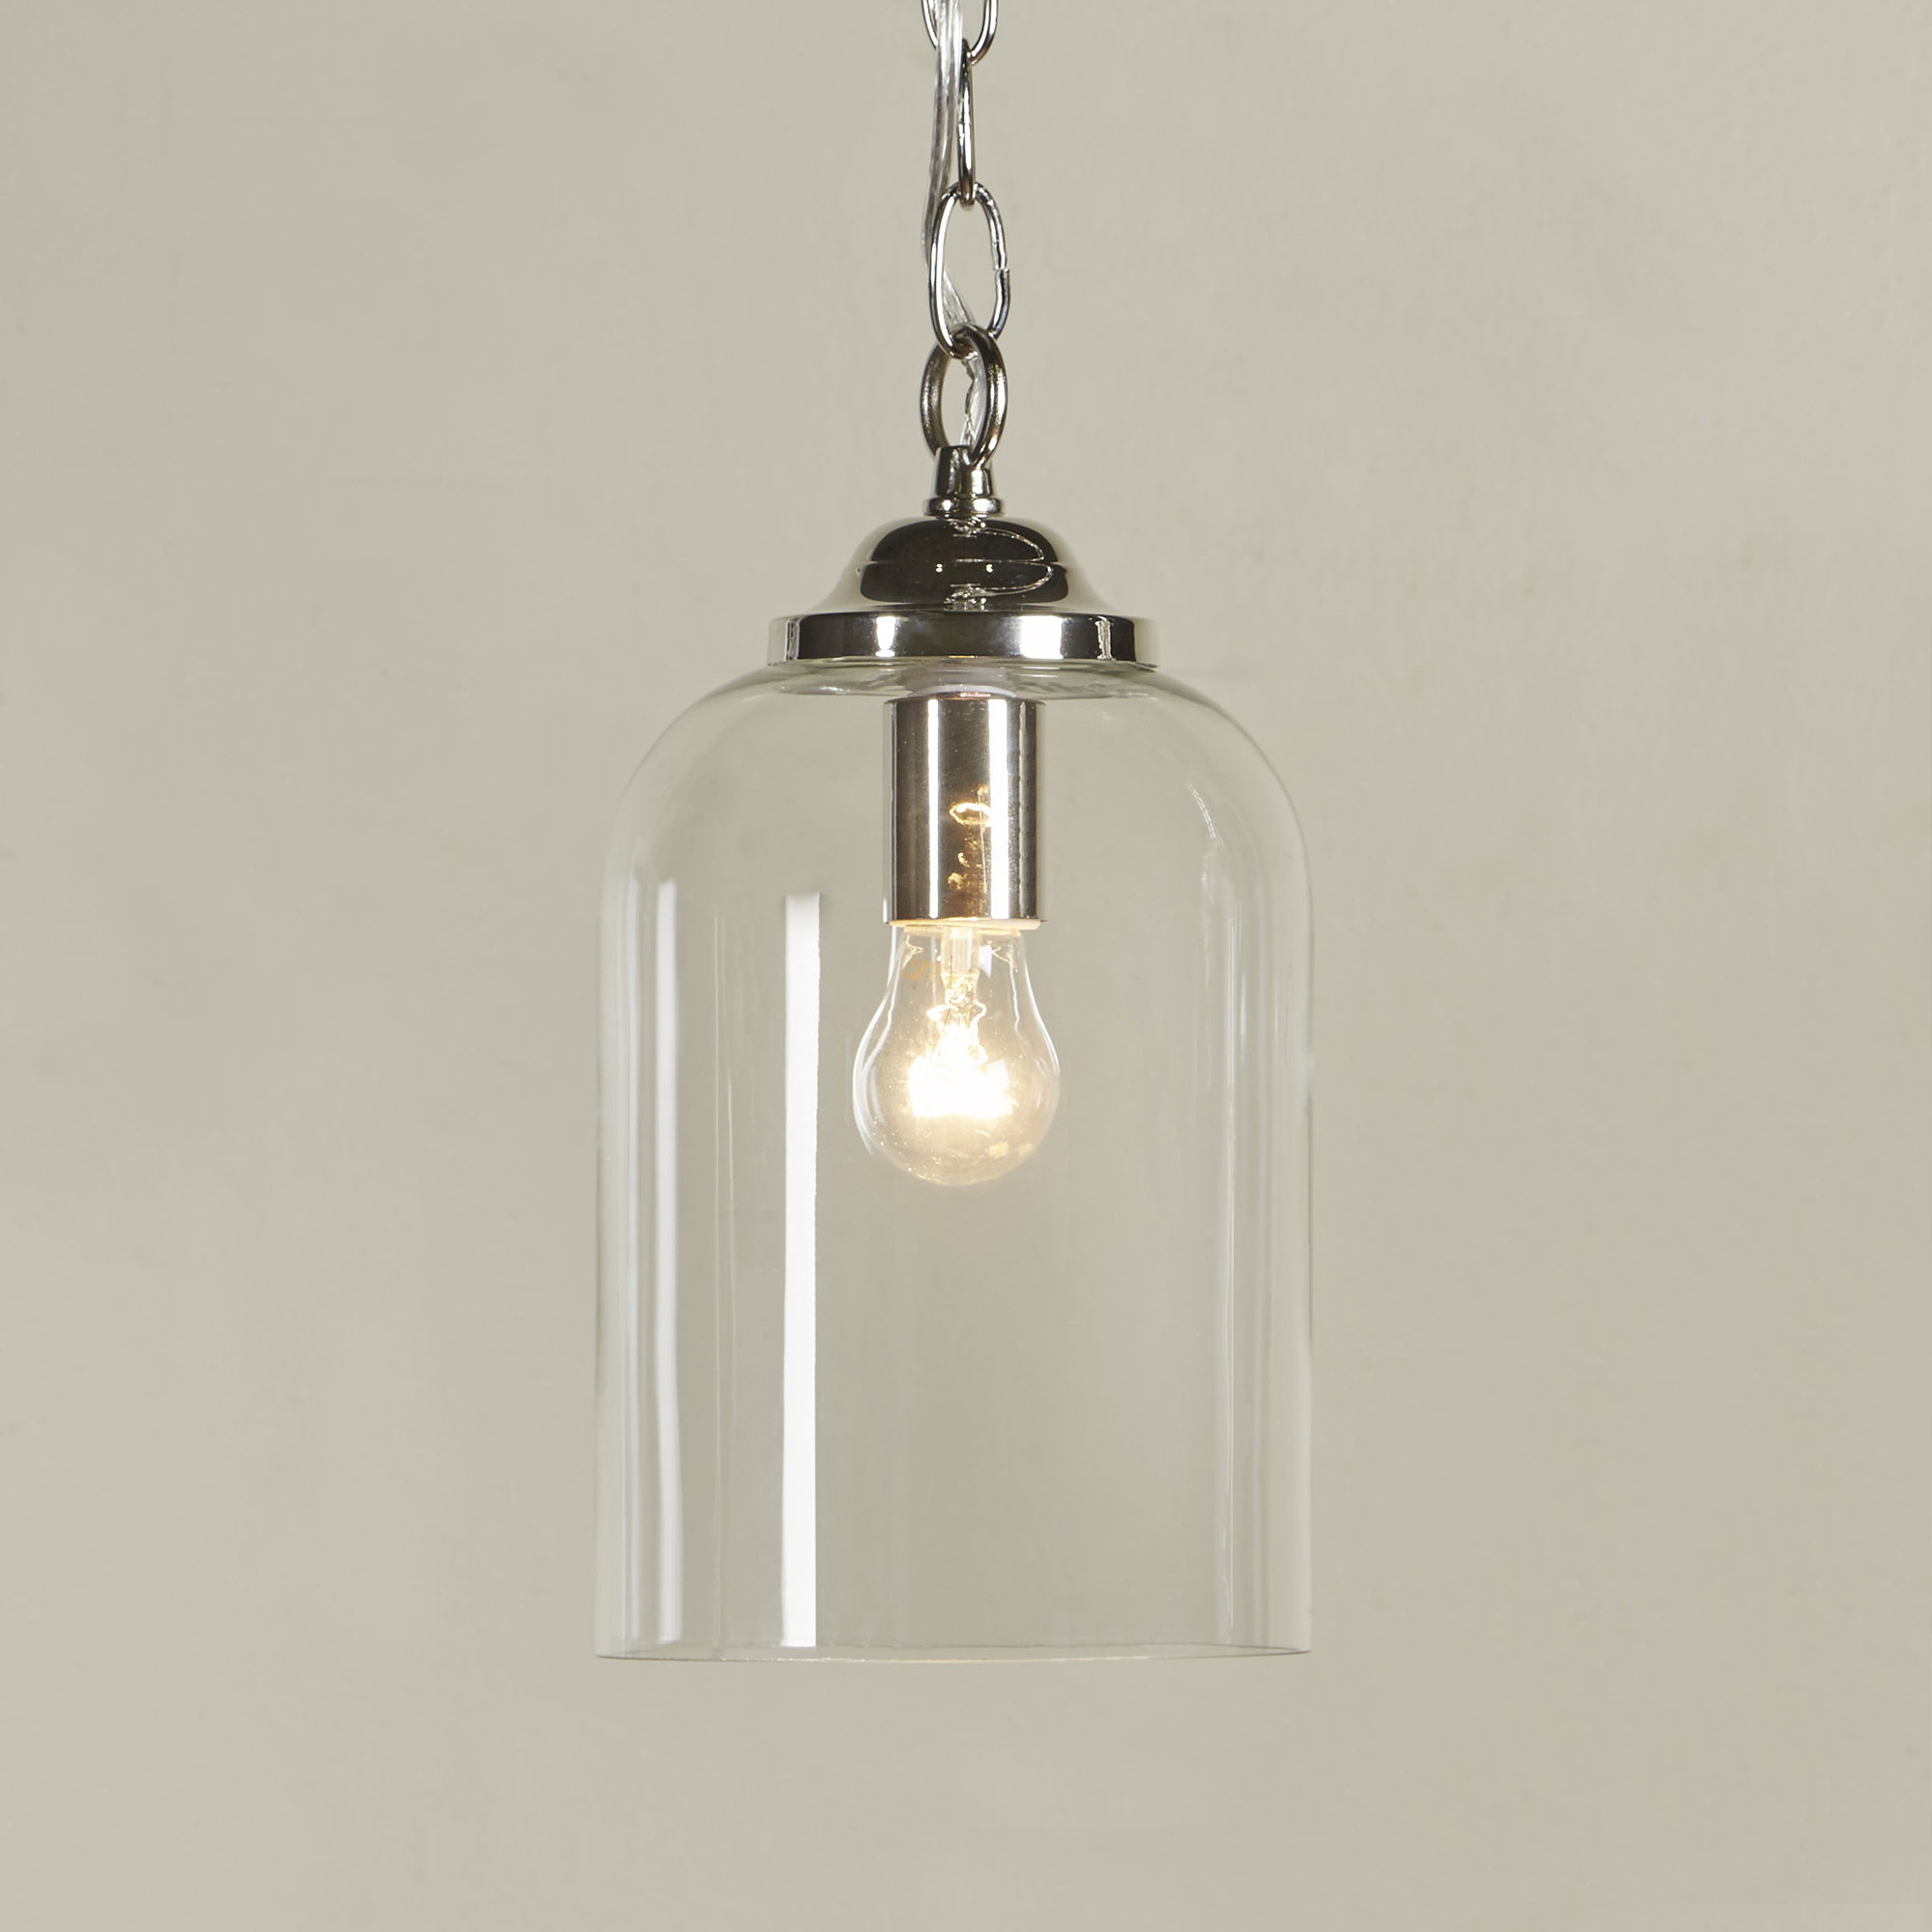 Most Recent Silber 1 Light Bell Pendant With Regard To Nolan 1 Light Single Cylinder Pendants (View 7 of 25)